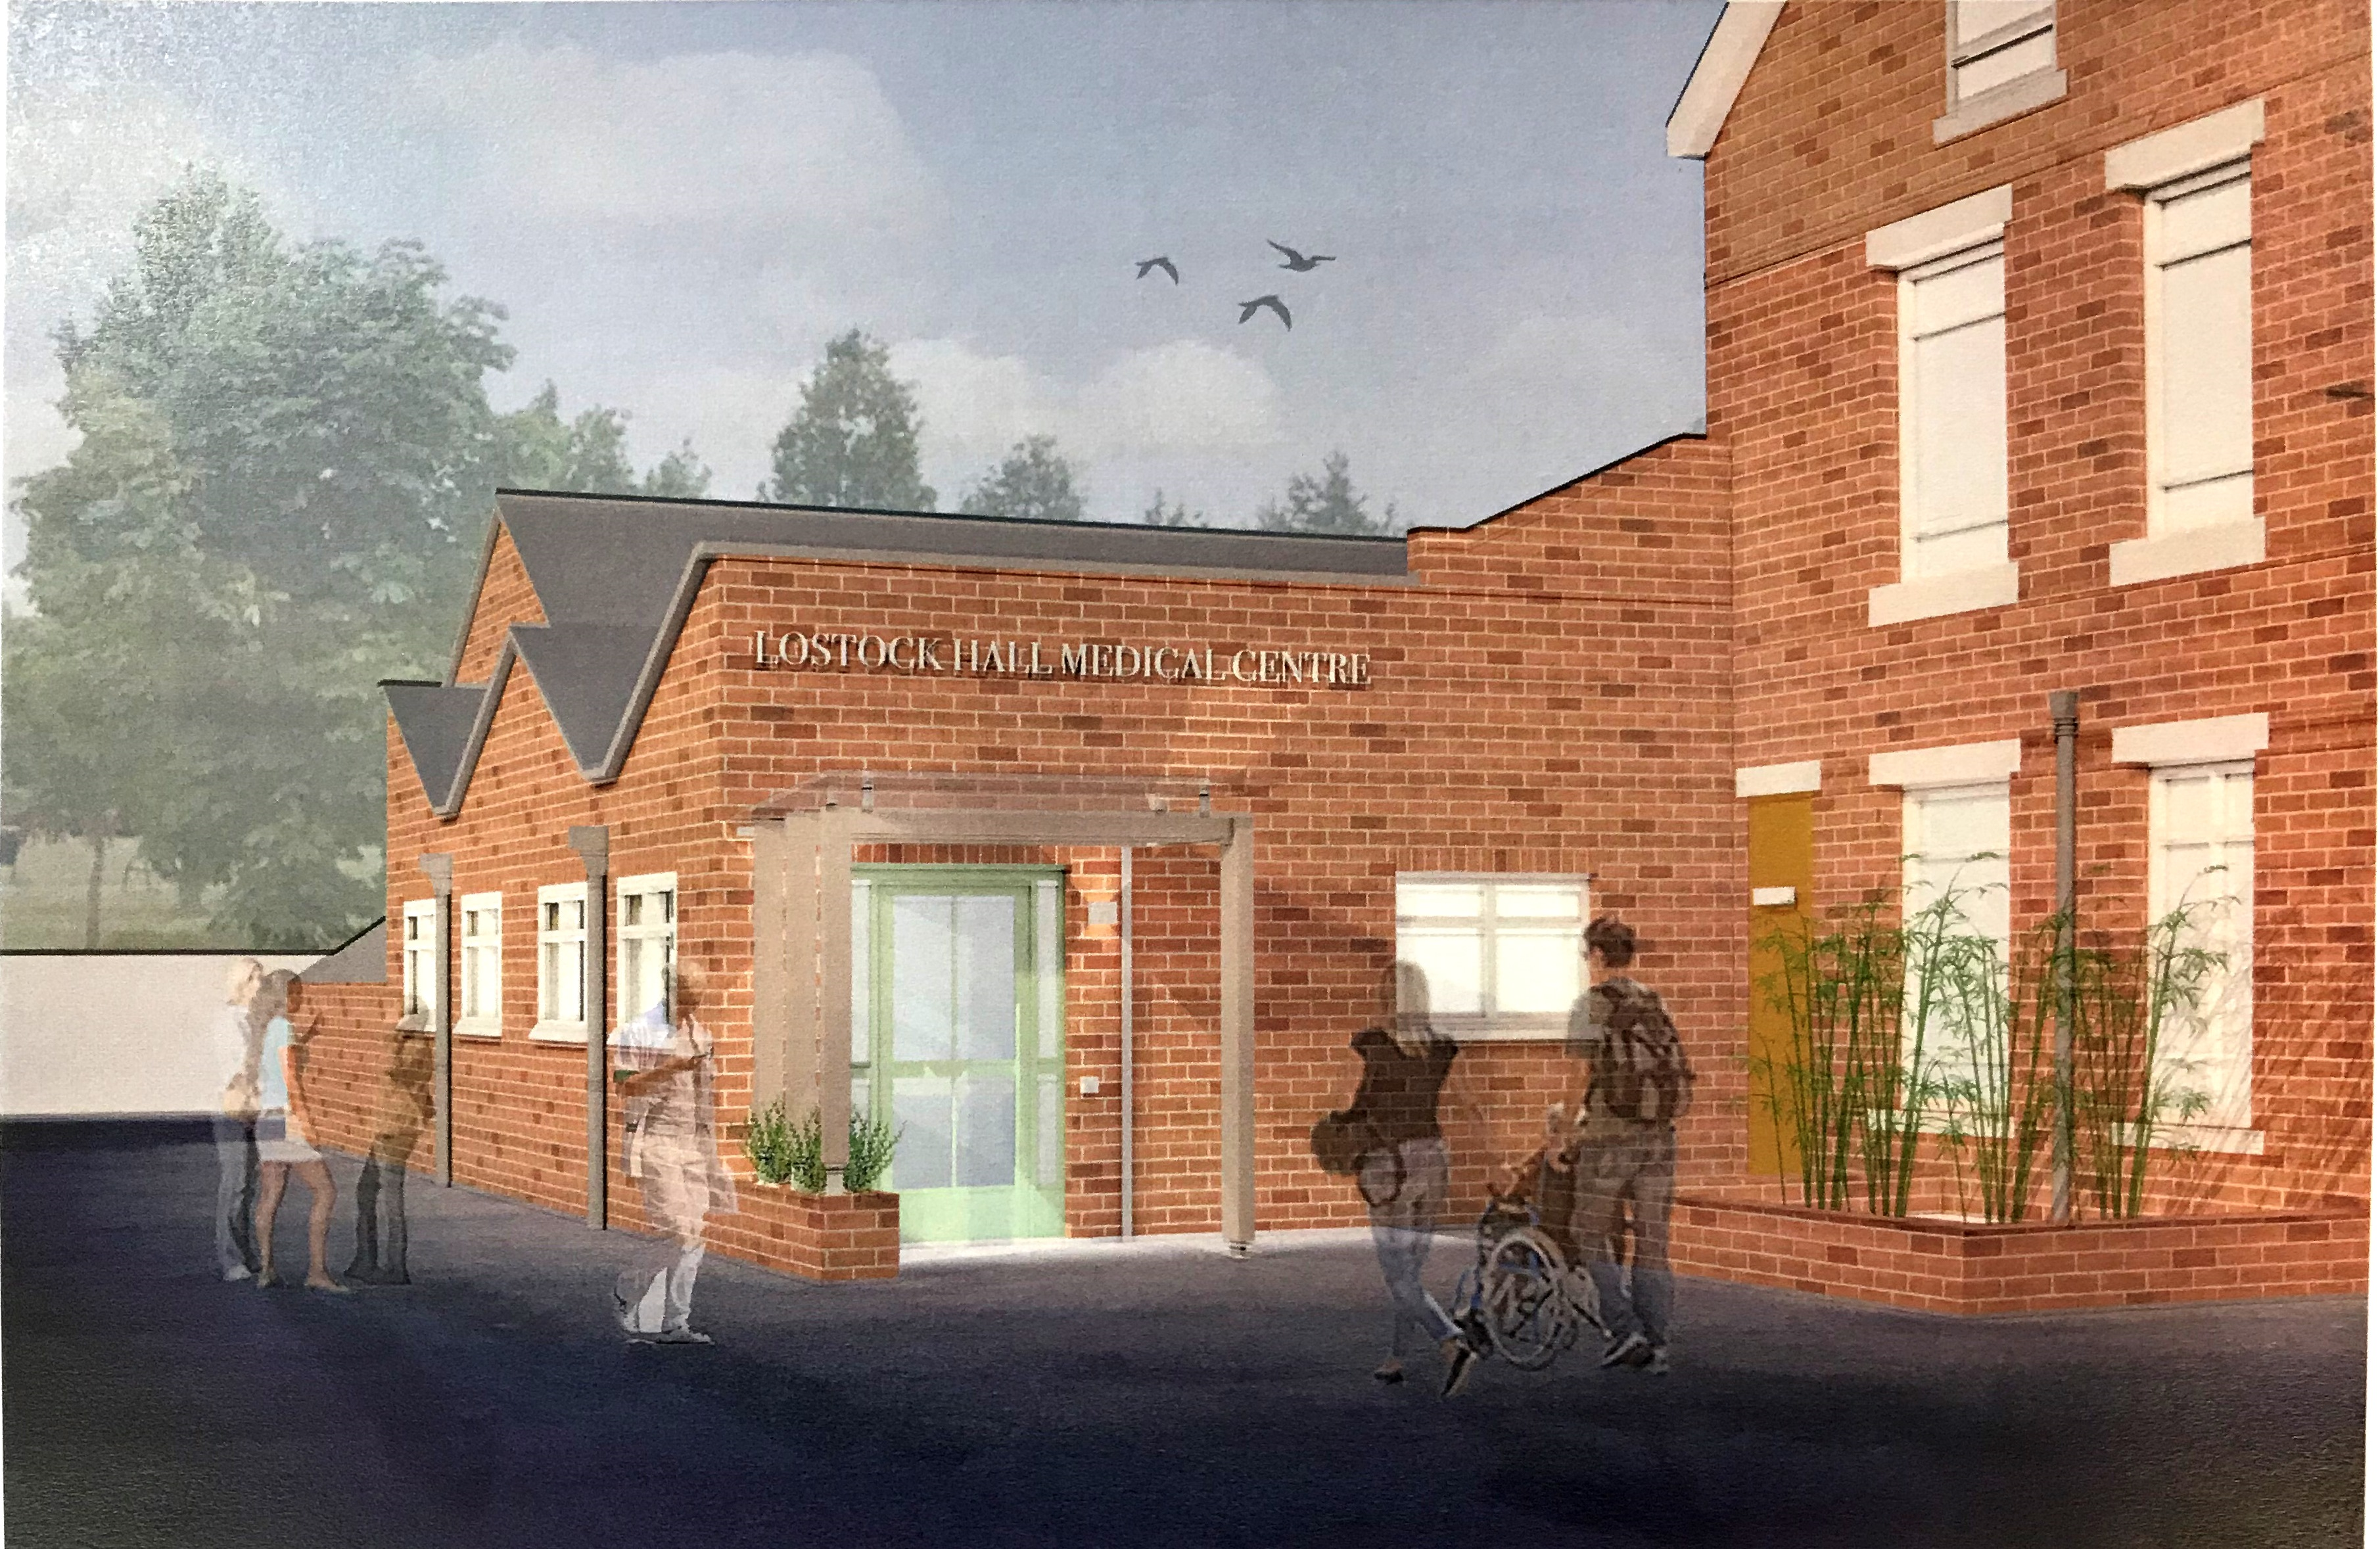 Dardsley new Entrance visualisation